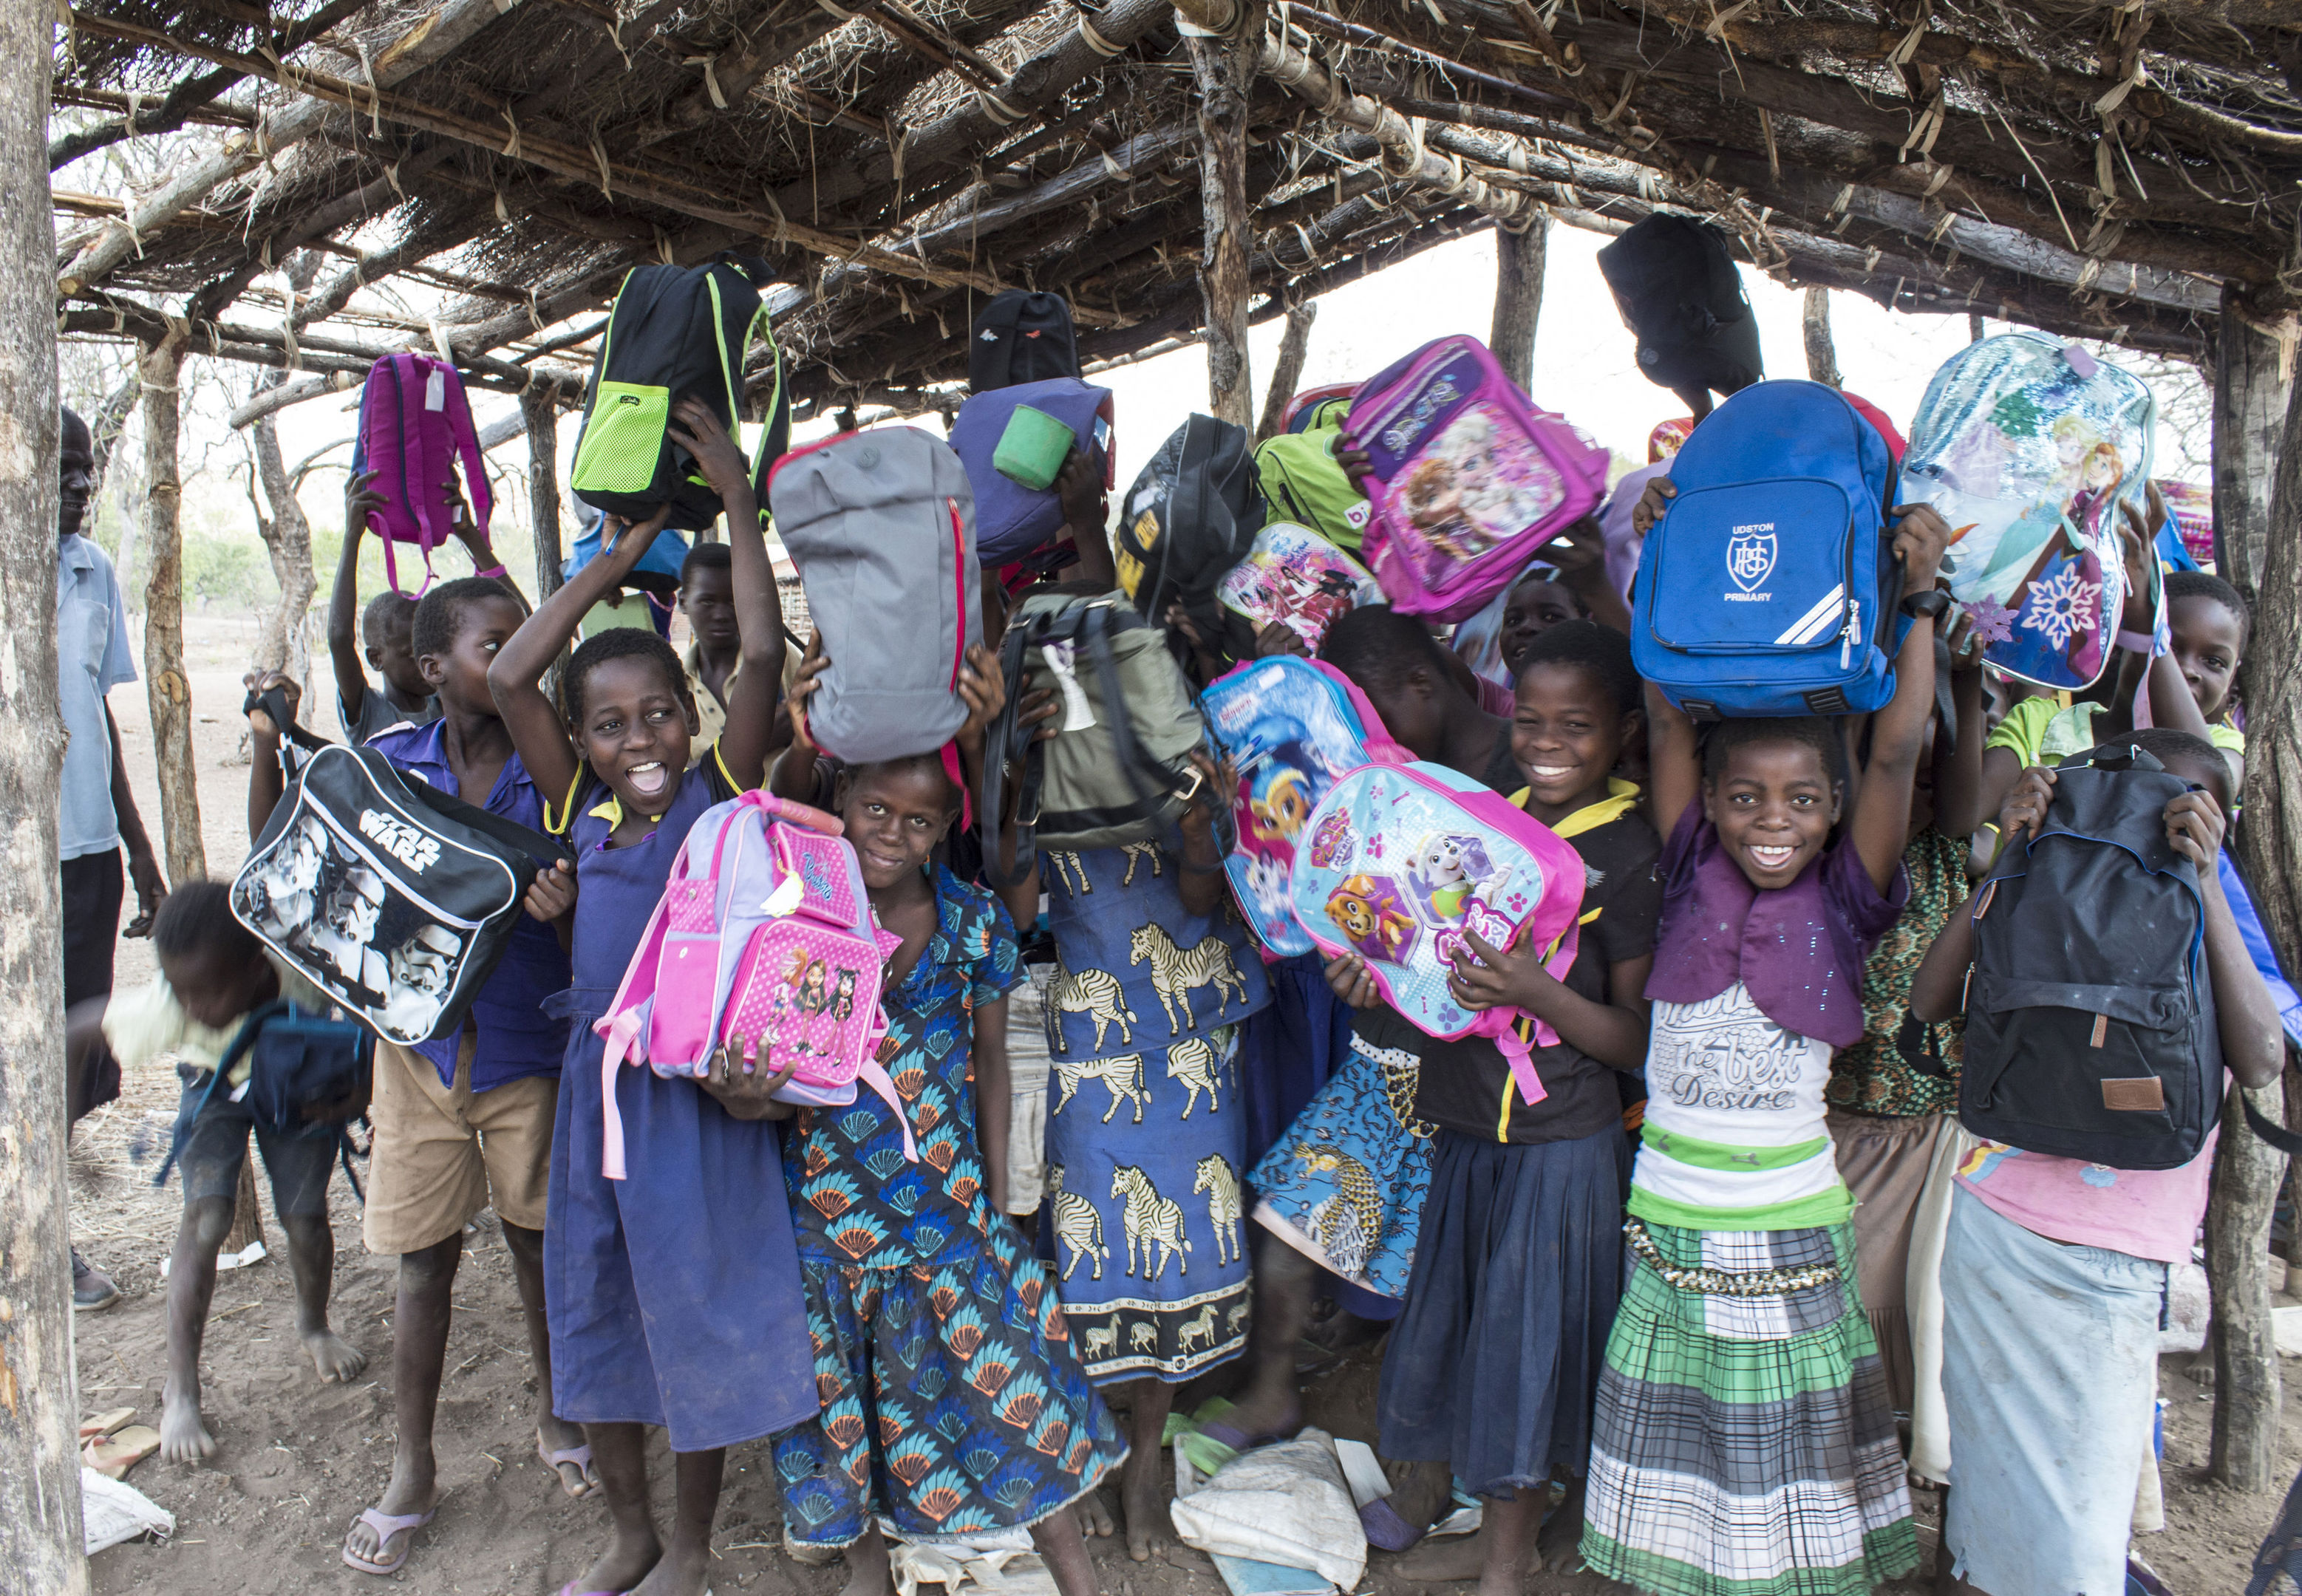 Children from Ngabu Primary School in Malawi with some of the 500,000 bags given out by Mary's Meals which were donated by supporters to schools it helps in the African country.